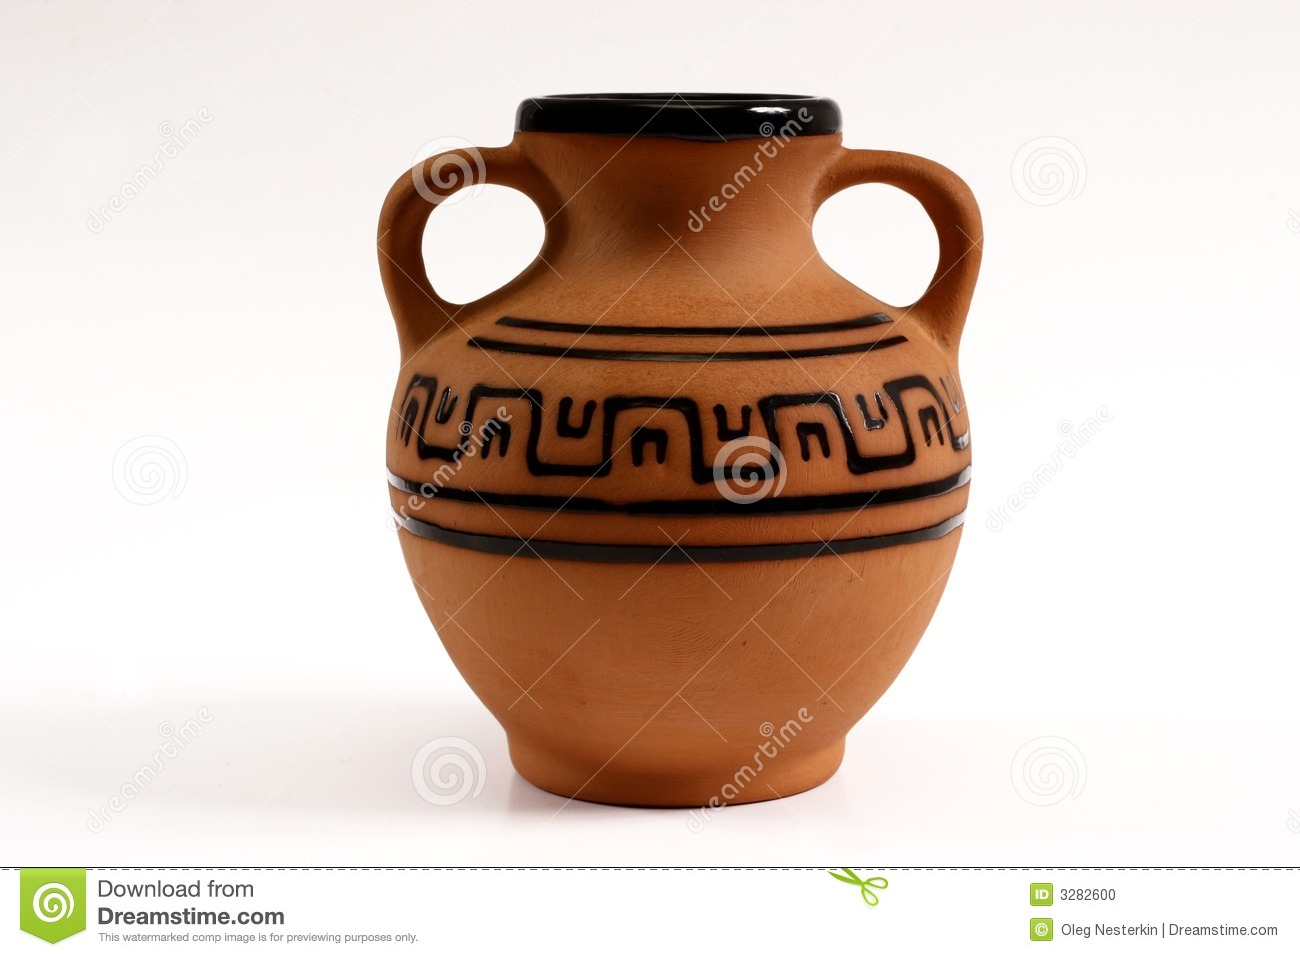 An ancient amphora was utillized for storage of wine.